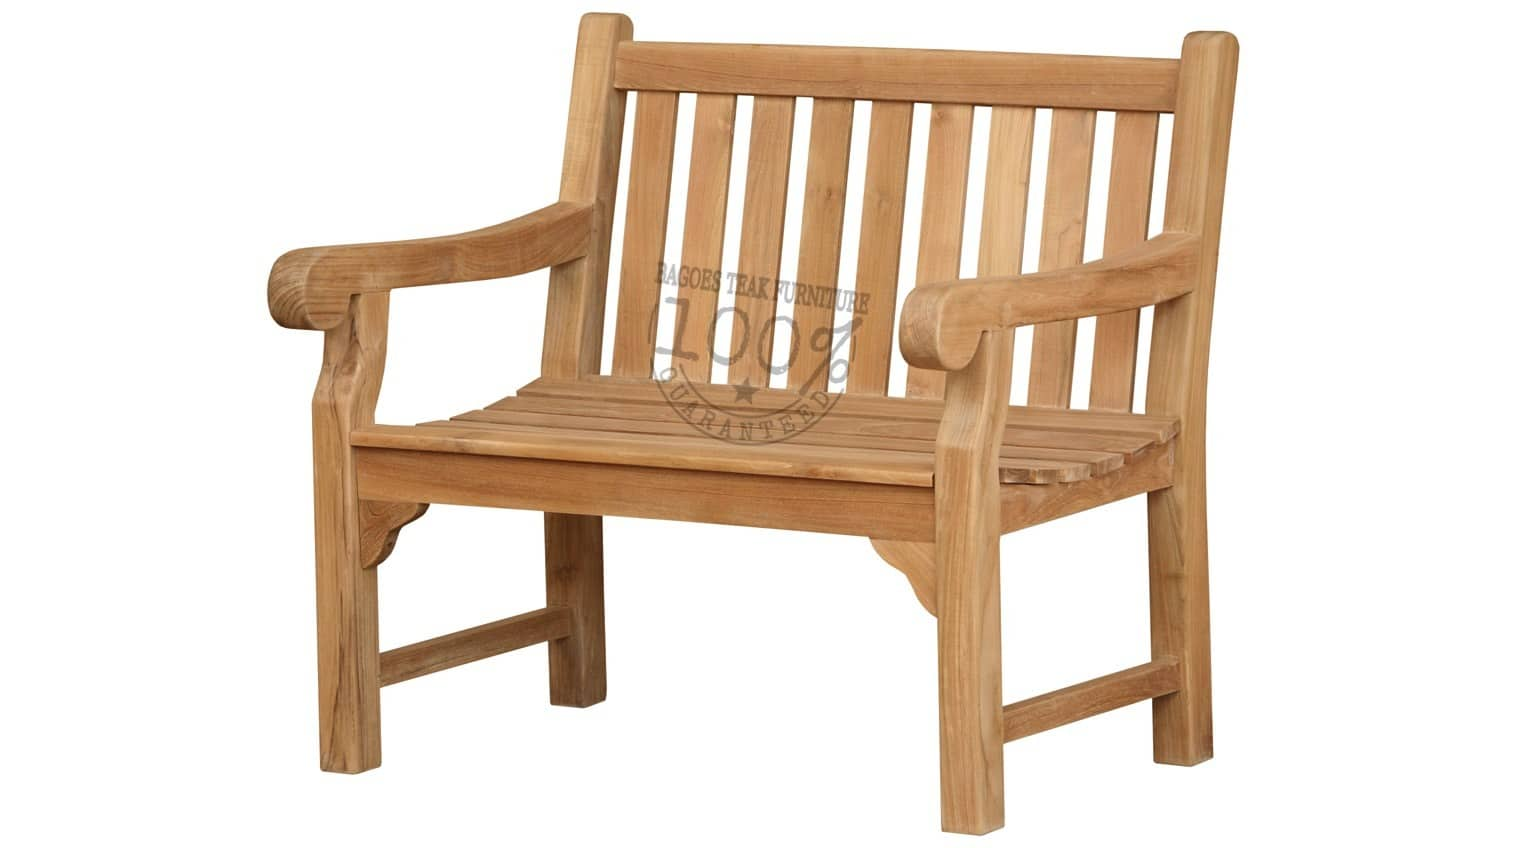 Outdoor teak benches bagoes teak furniture indonesian furniture - 50 Stunning Scandinavian Style Chairs To Help You Pull Off